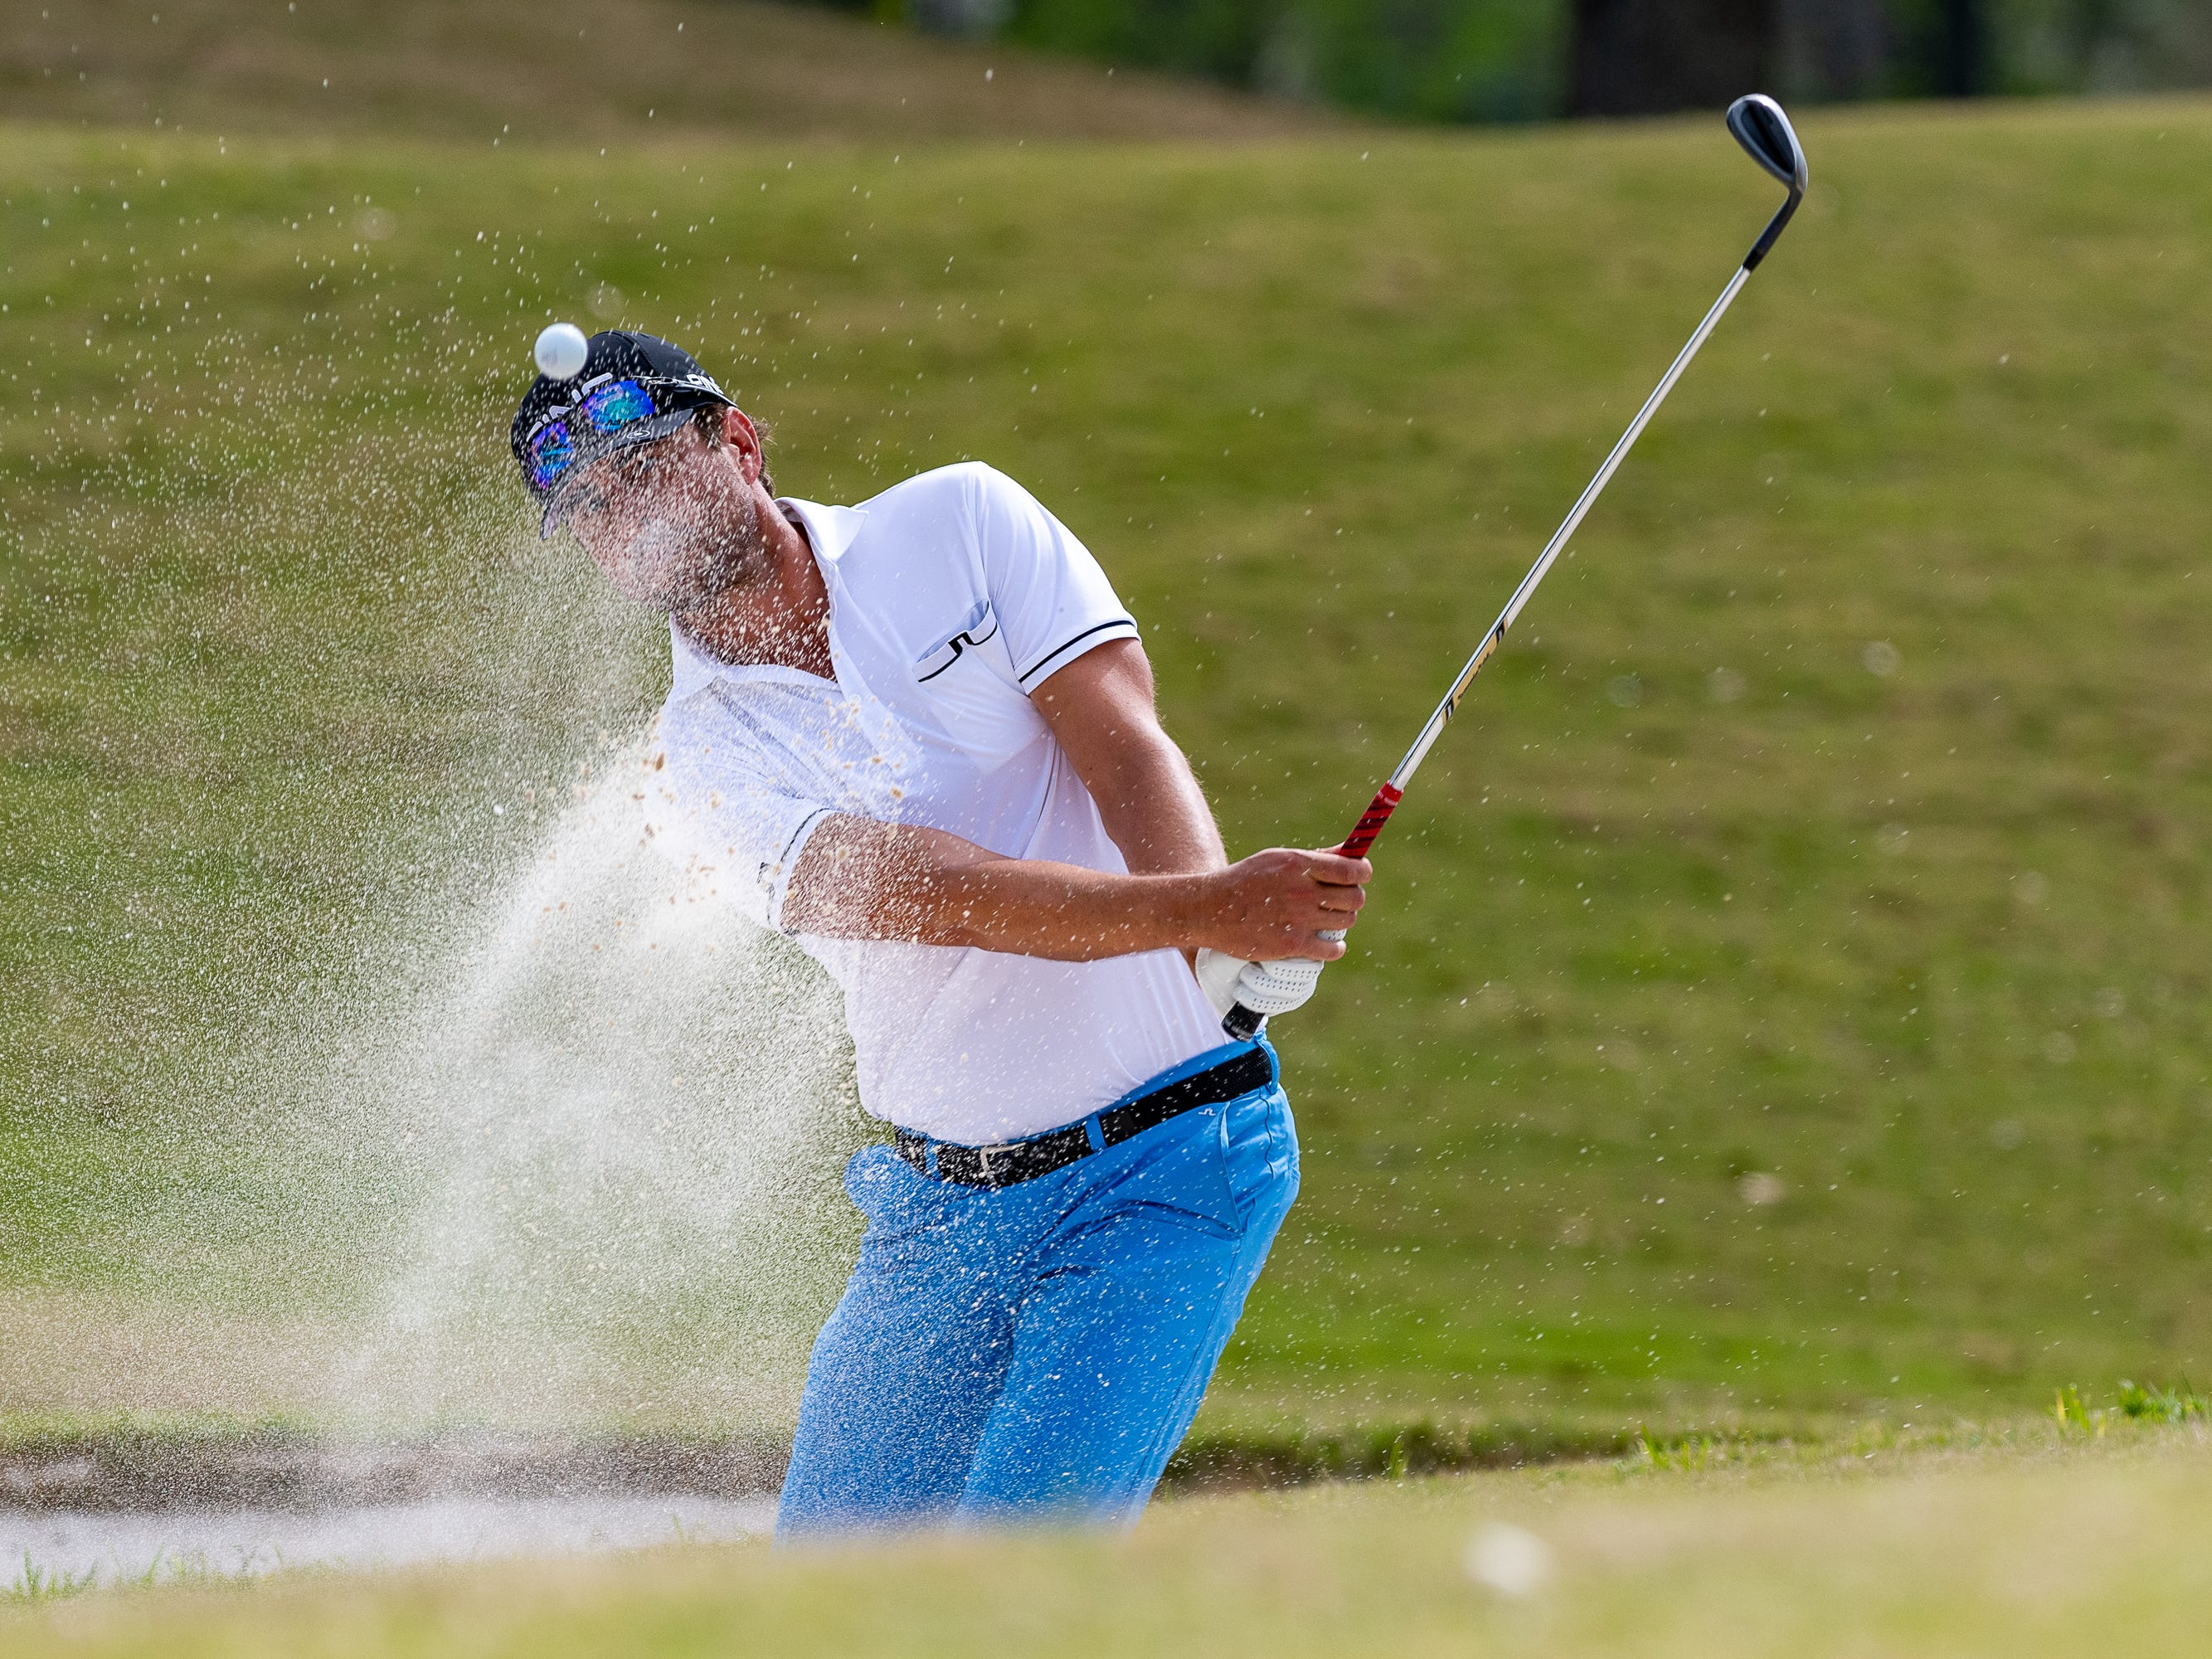 Scott Harrington from the sand trap on 16 during the final round of the Web.com 2019 Chitimacha Louisiana Open presented by Mistras at Le Triomphe. Sunday, March 24, 2019.